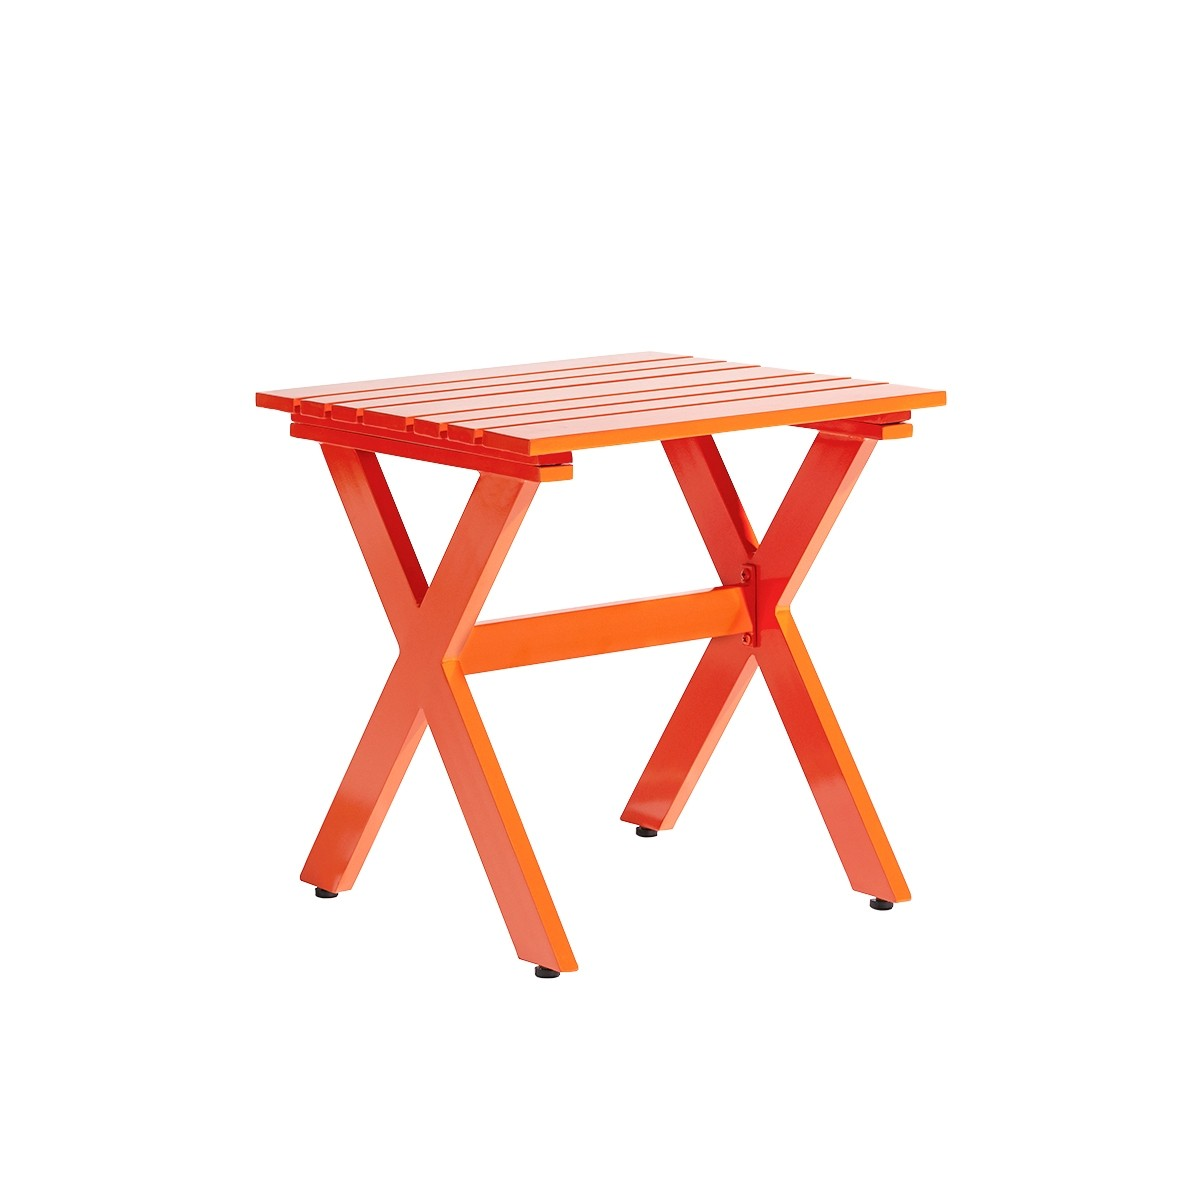 graphic side table stori modern outdoor orange tool chest easter tablecloths tables for small spaces kitchen sofa short legs electric wall clock living room end essentials shelf